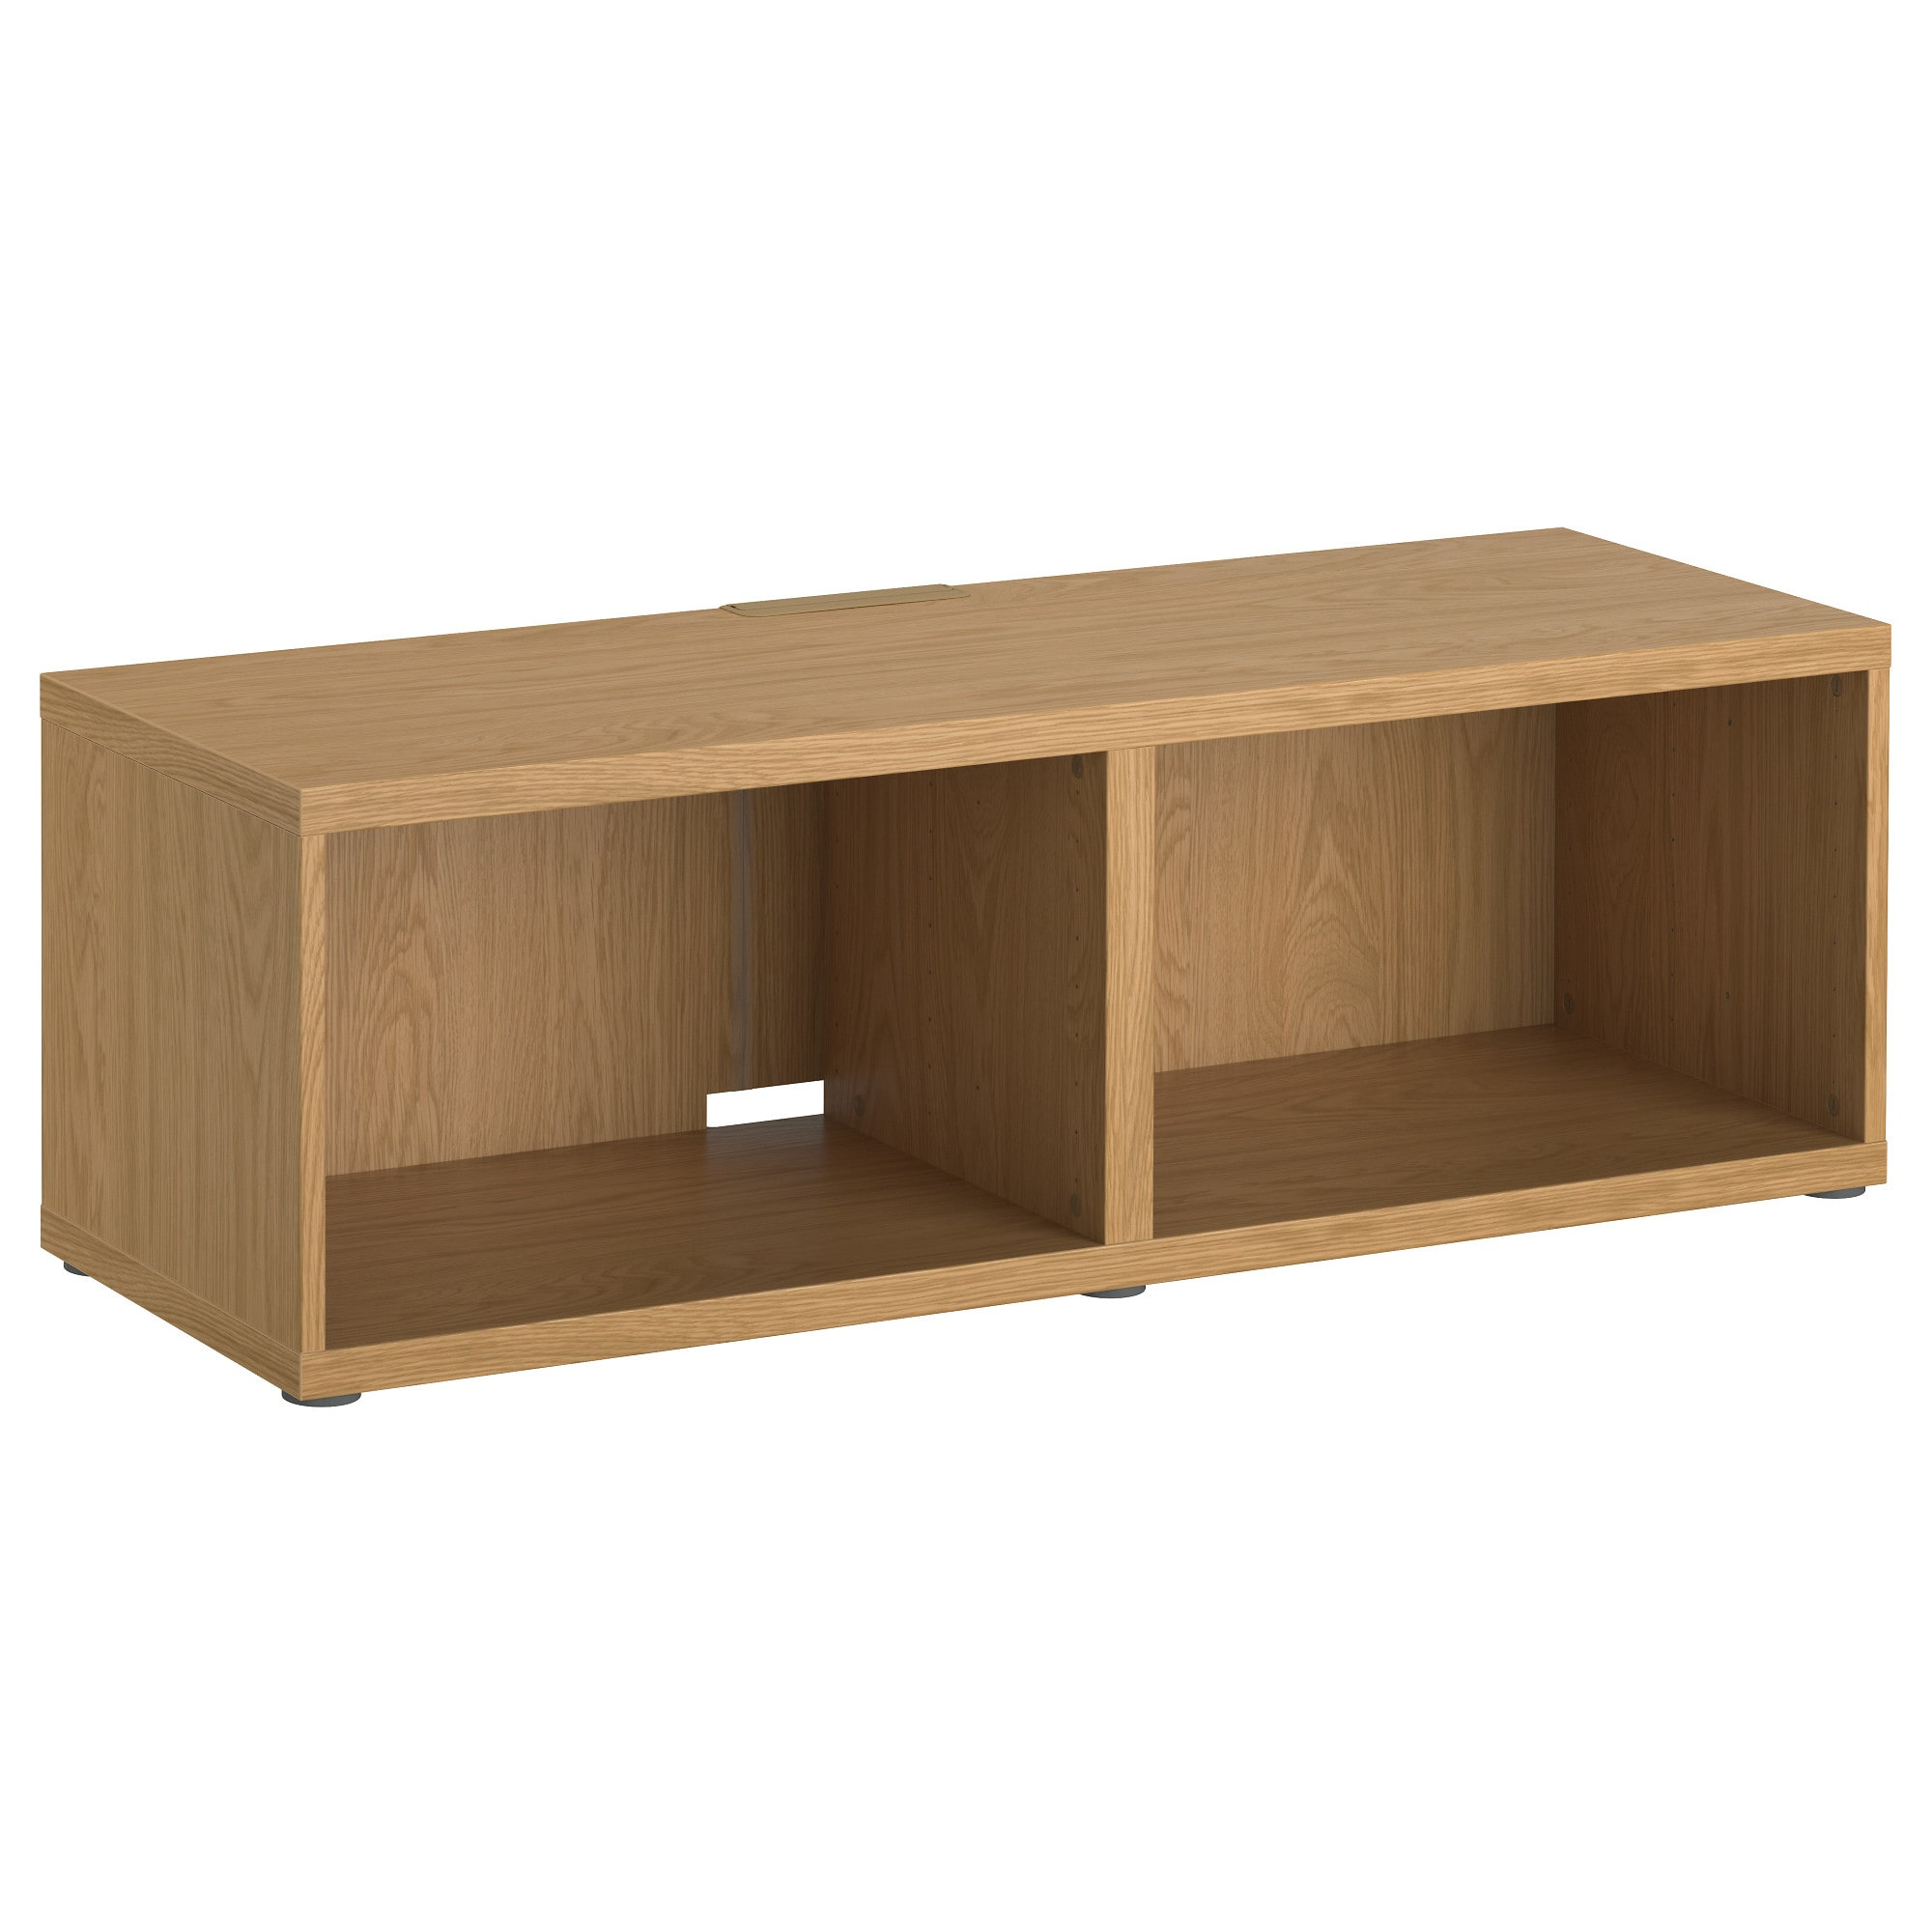 Best And Newest Bestå Tv Bench Oak Effect 120 X 40 X 38 Cm – Ikea With Regard To Ikea Wall Mounted Tv Cabinets (View 1 of 20)